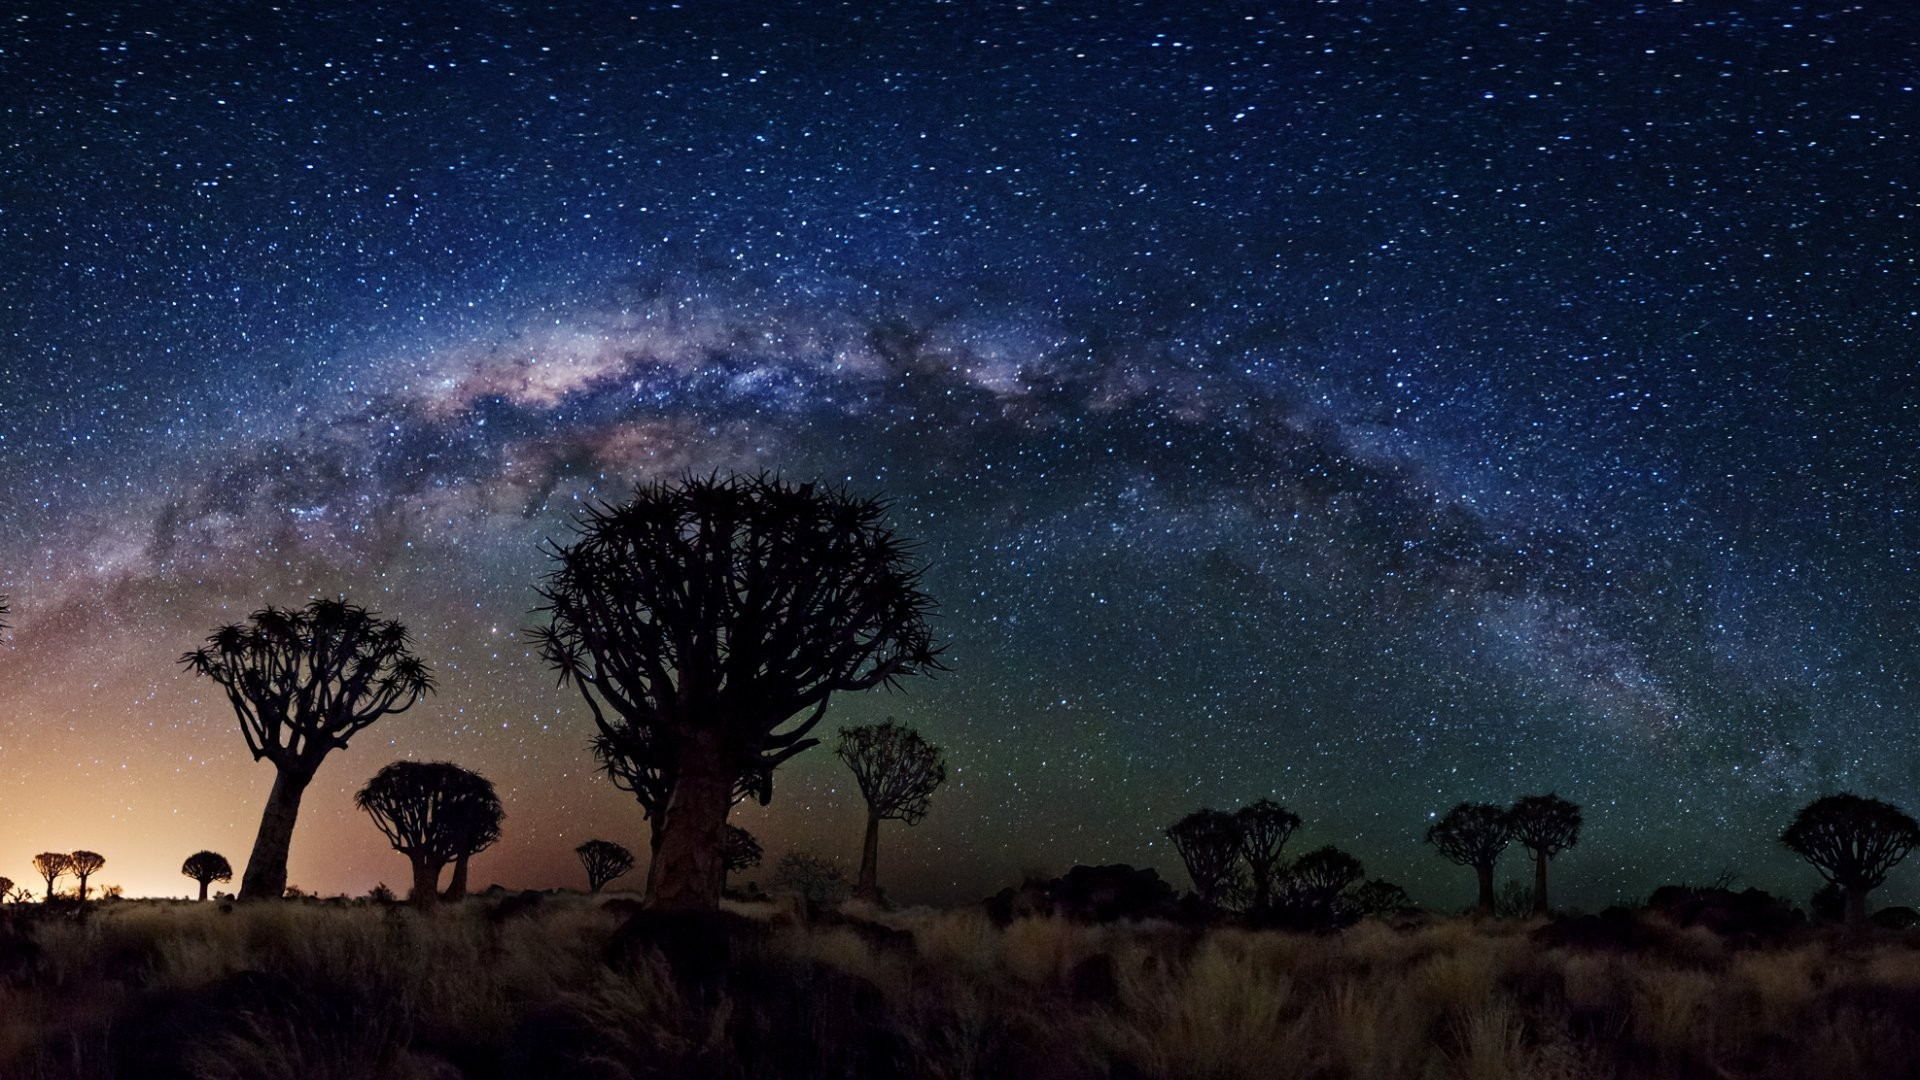 1920x1080 NASA Wallpaper